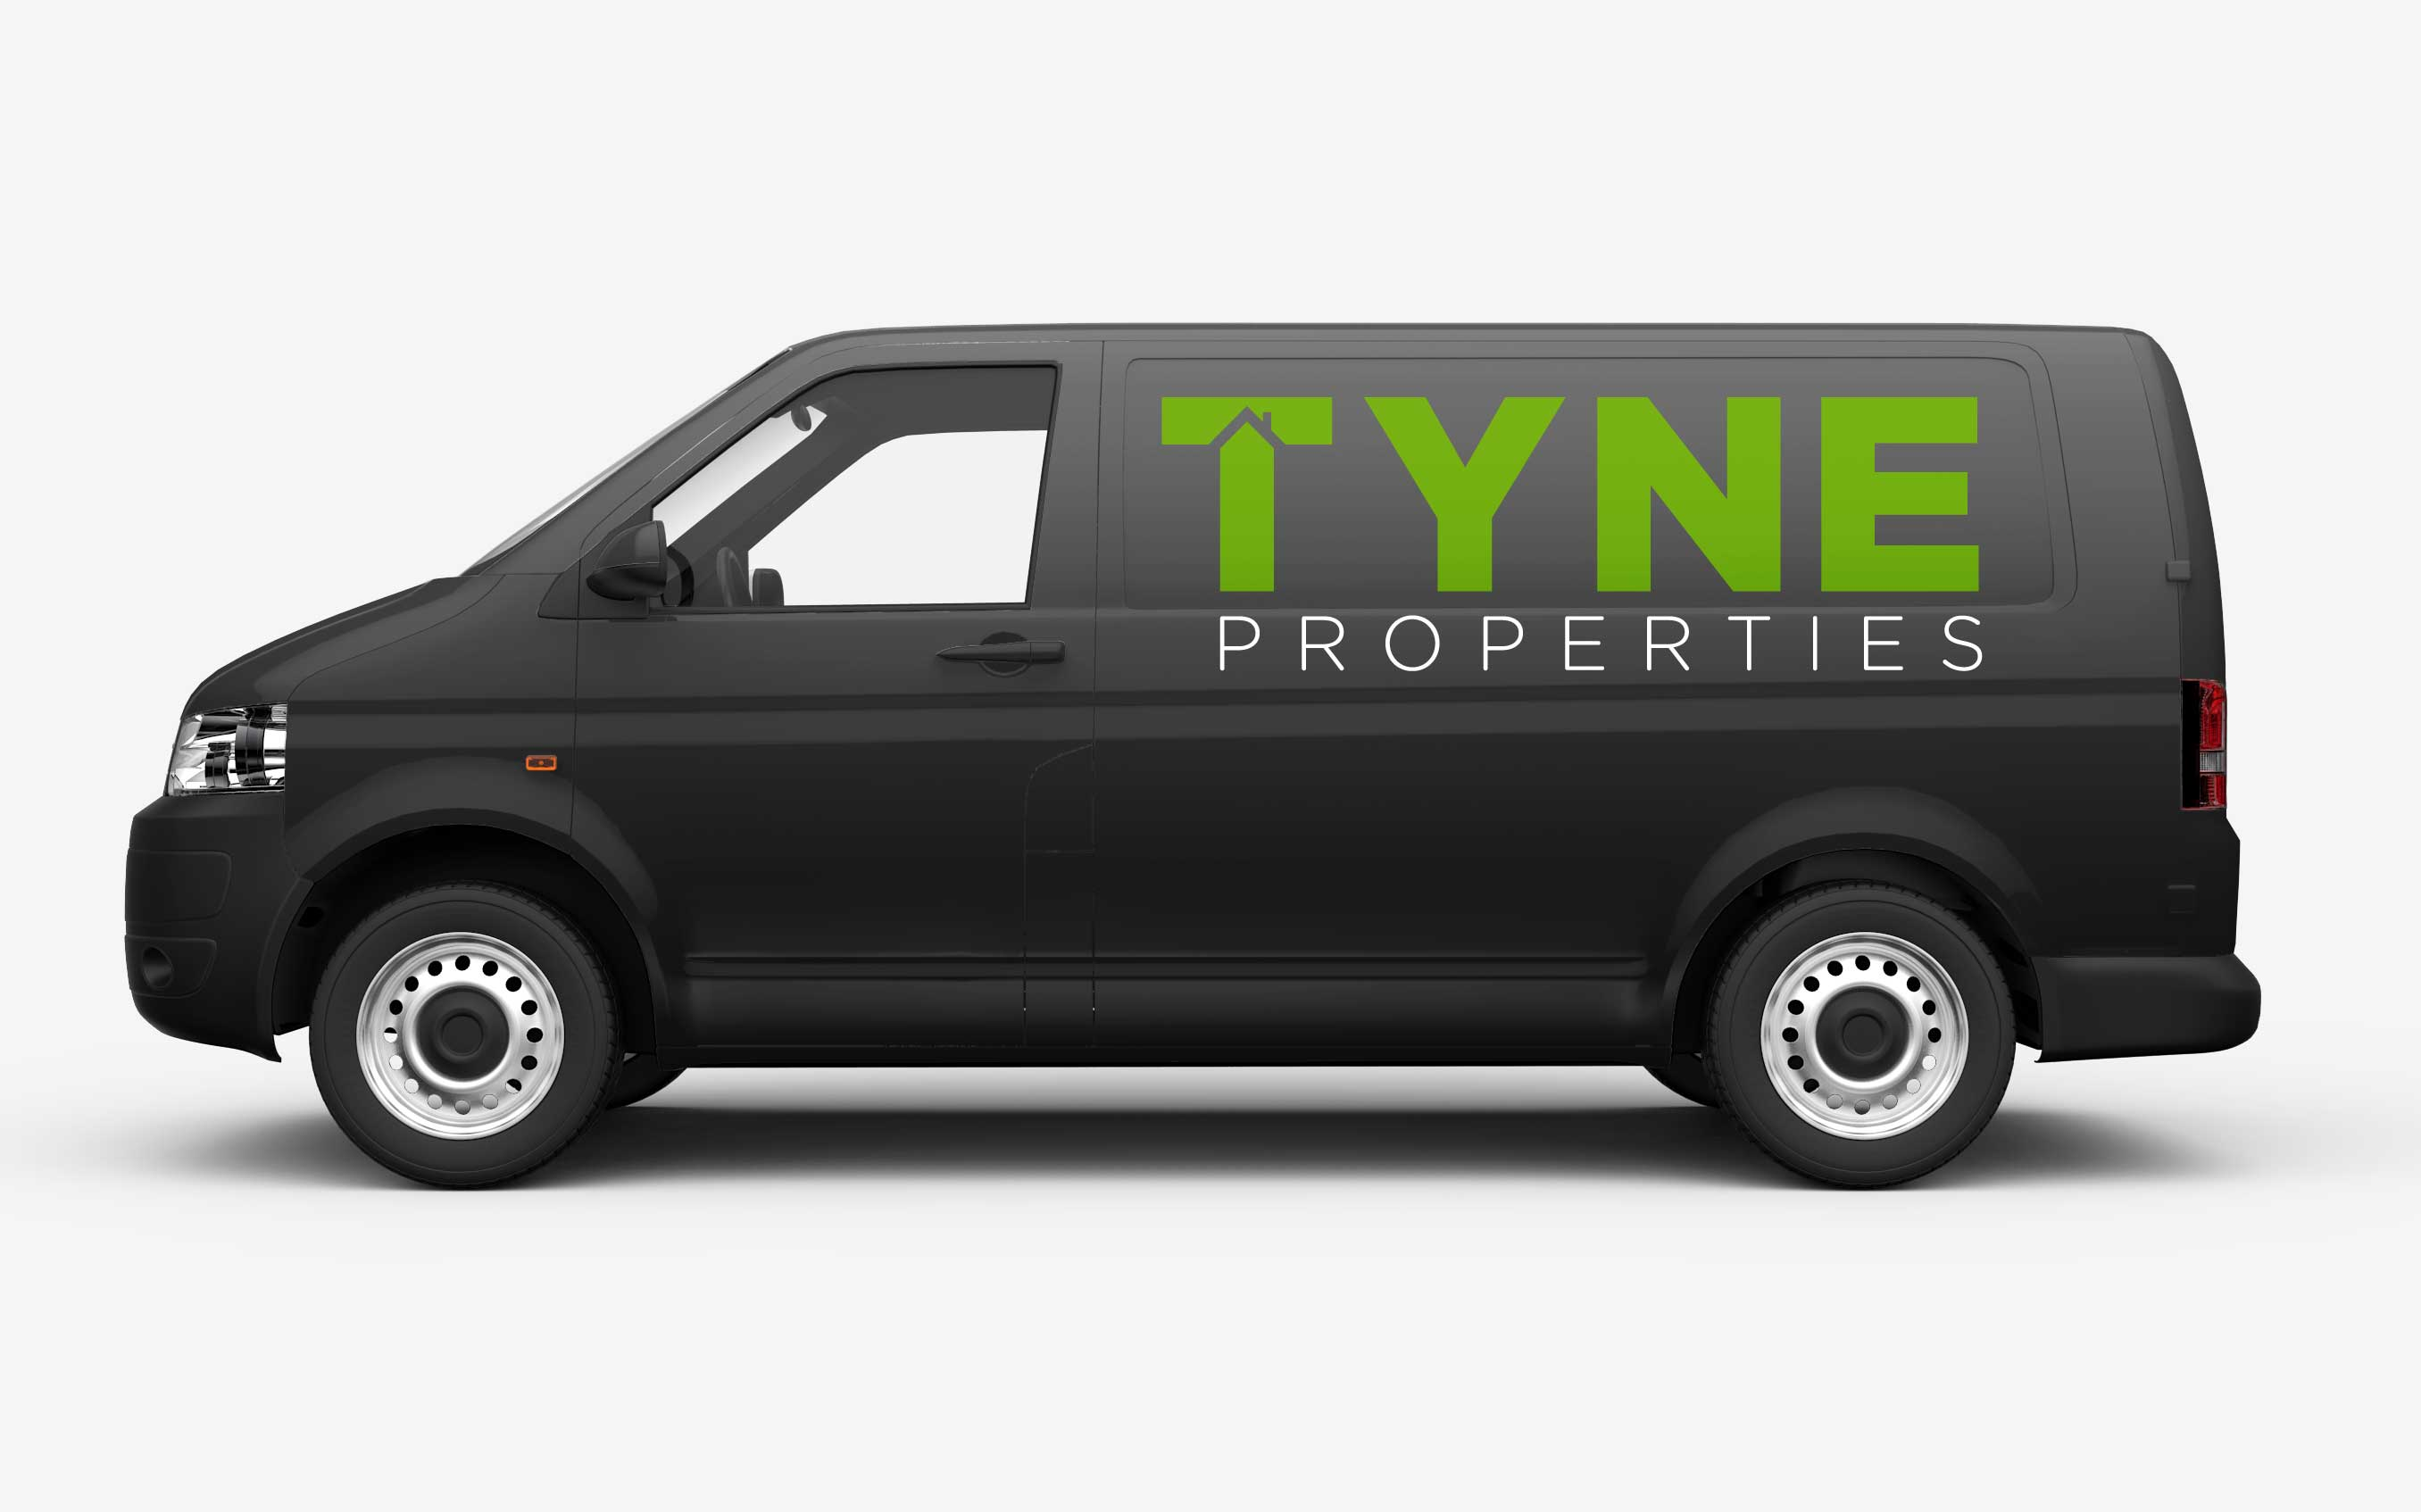 Van graphics after branding is finished.